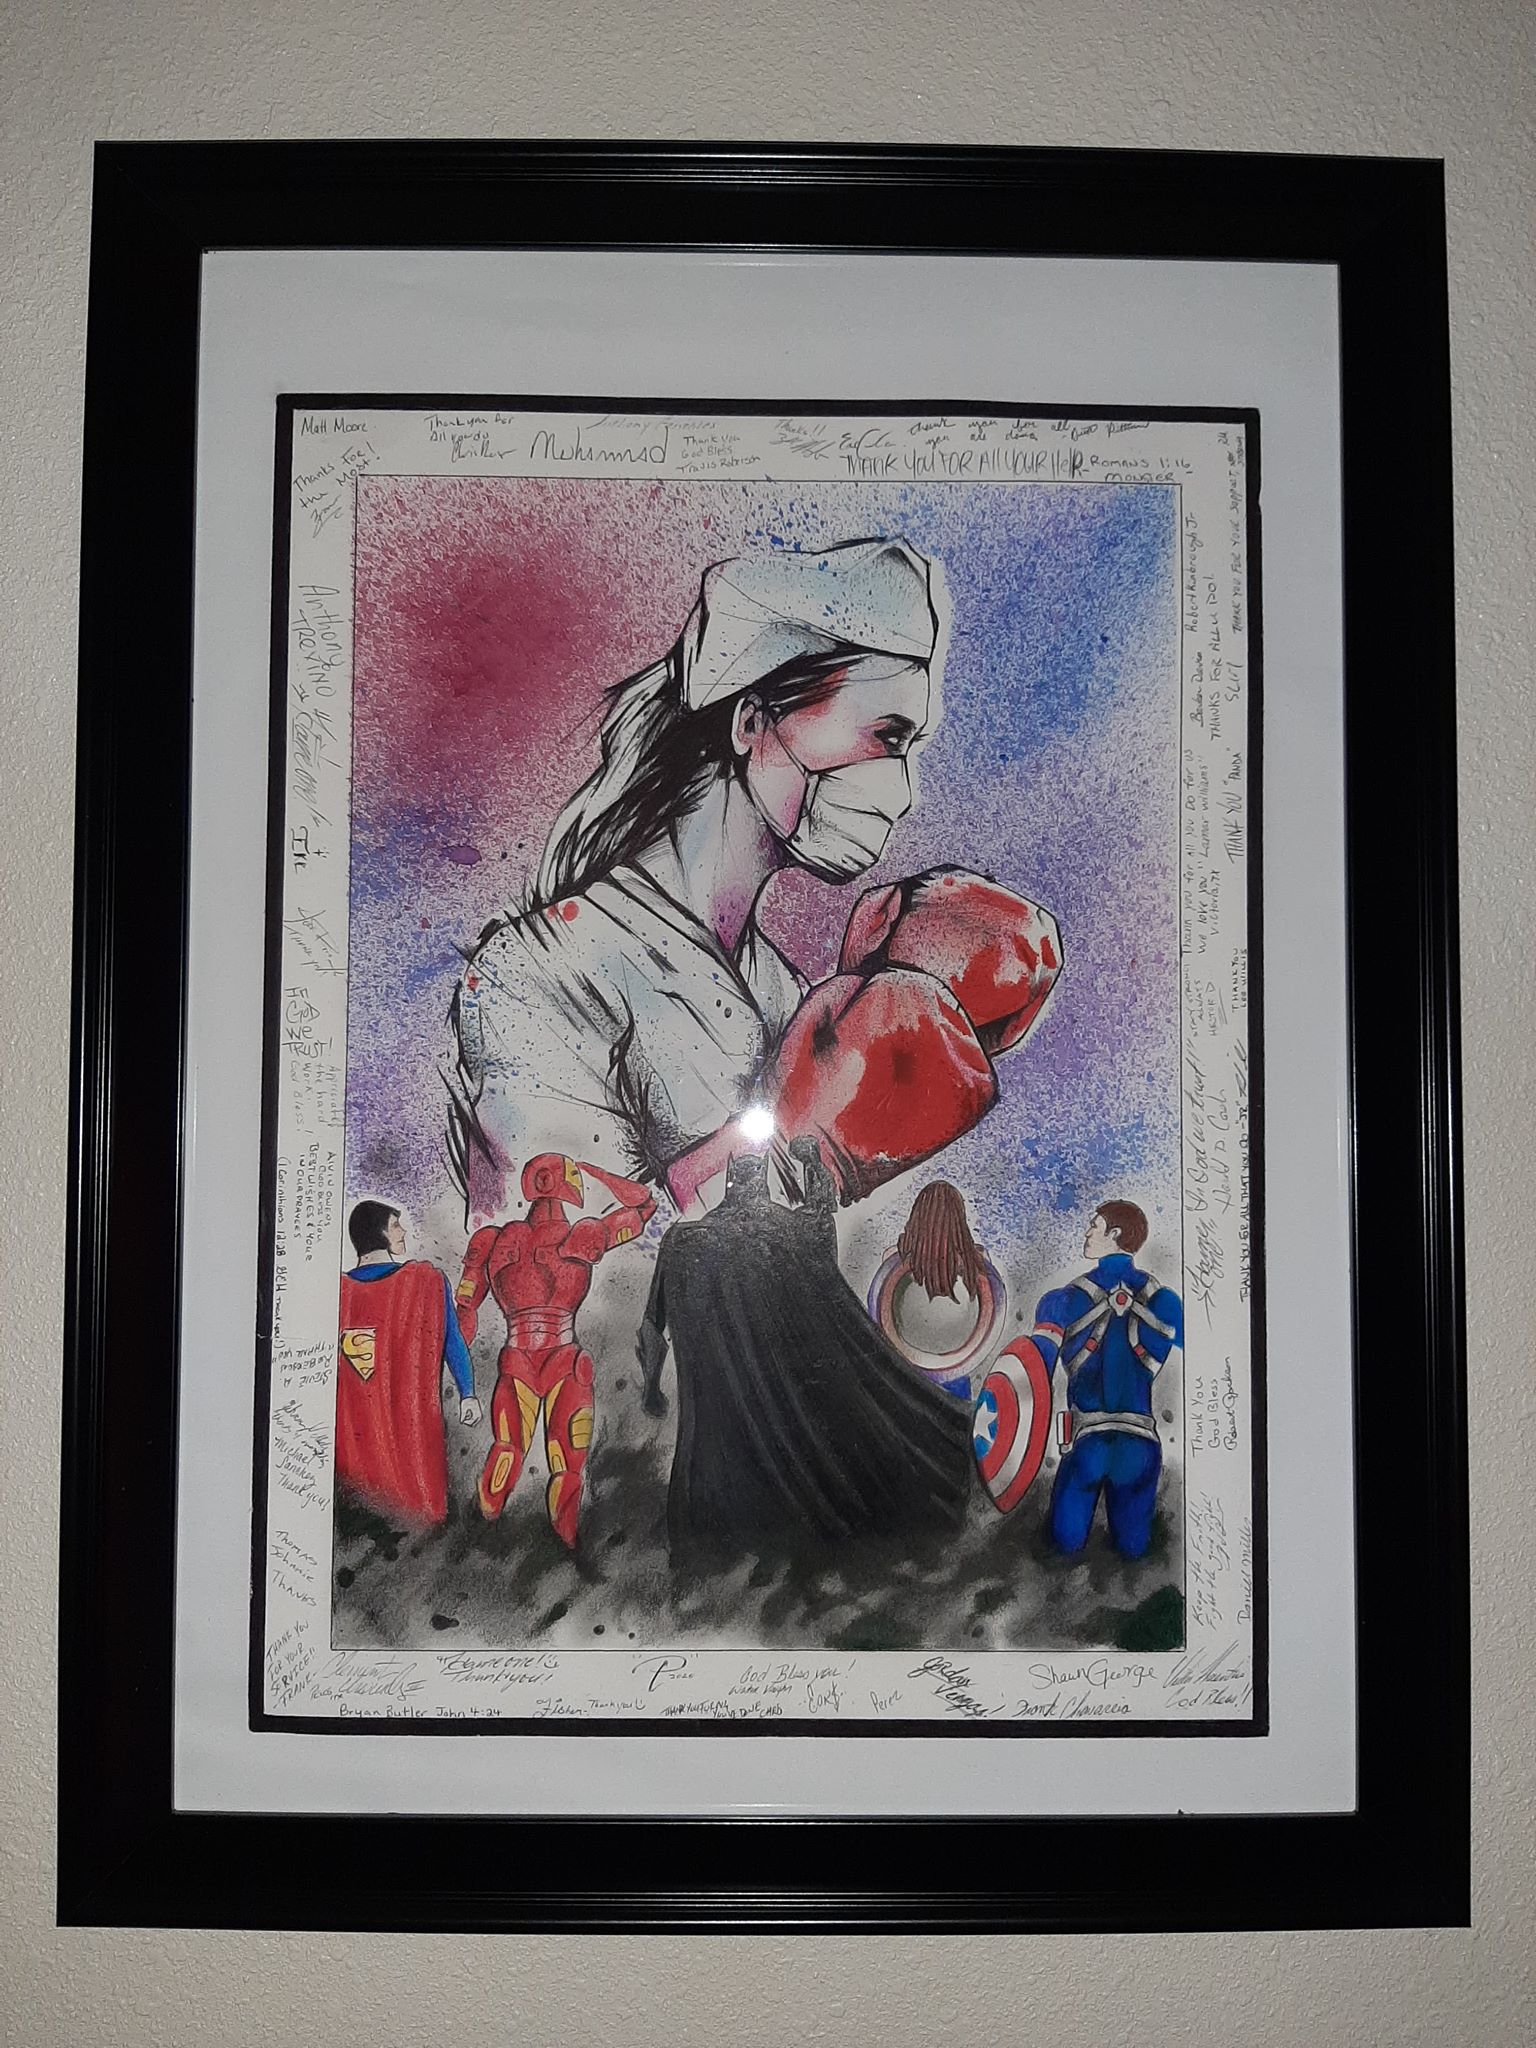 Kasi Veach's partner, who is currently incarcerated, drew her this picture and had his dorm mates sign it. Veach, a registered nurse, said her partner was approved for parole but his release was postponed due to COVID-19. The Texas Department of Criminal Justice said it is postponing the release of inmates who are sick with COVID-19, awaiting a virus test or may have come into contact with an infected person.